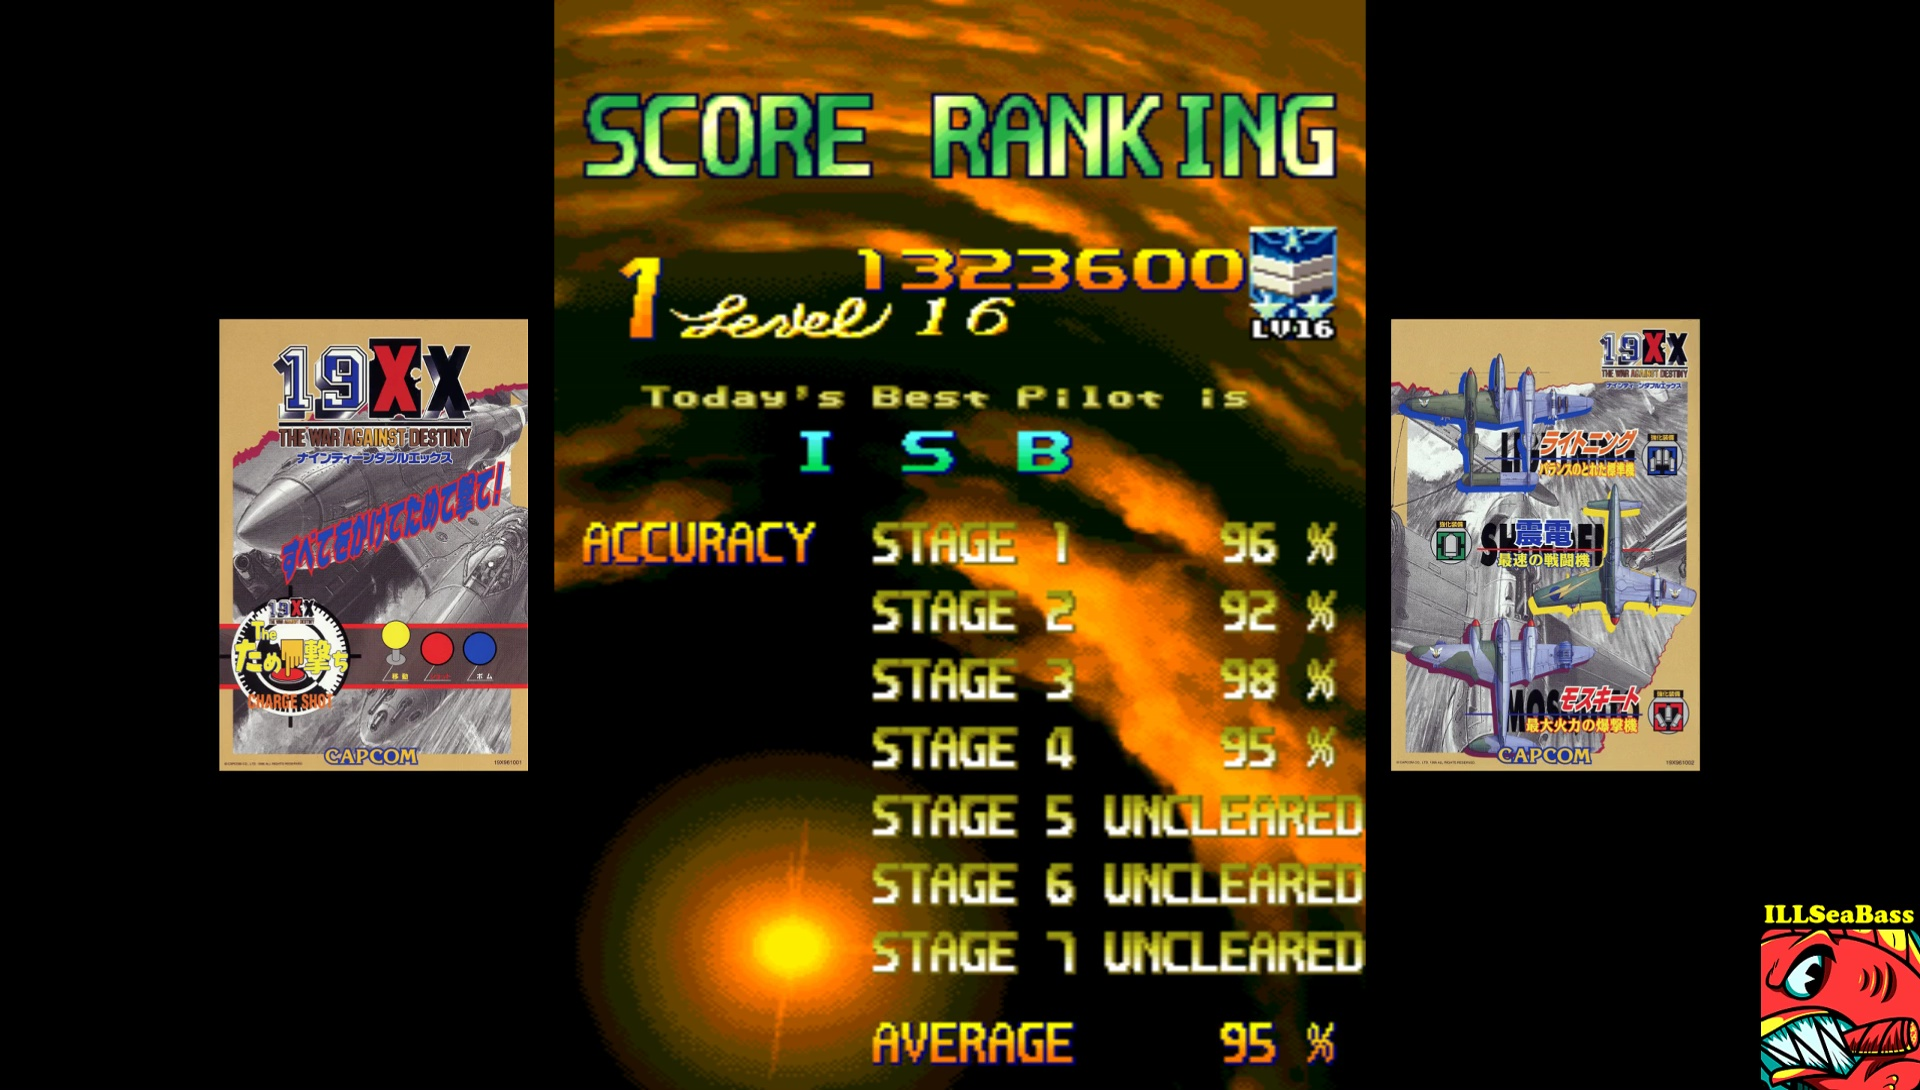 ILLSeaBass: 19XX War Against Destiny (Arcade Emulated / M.A.M.E.) 1,323,600 points on 2017-07-09 22:05:11